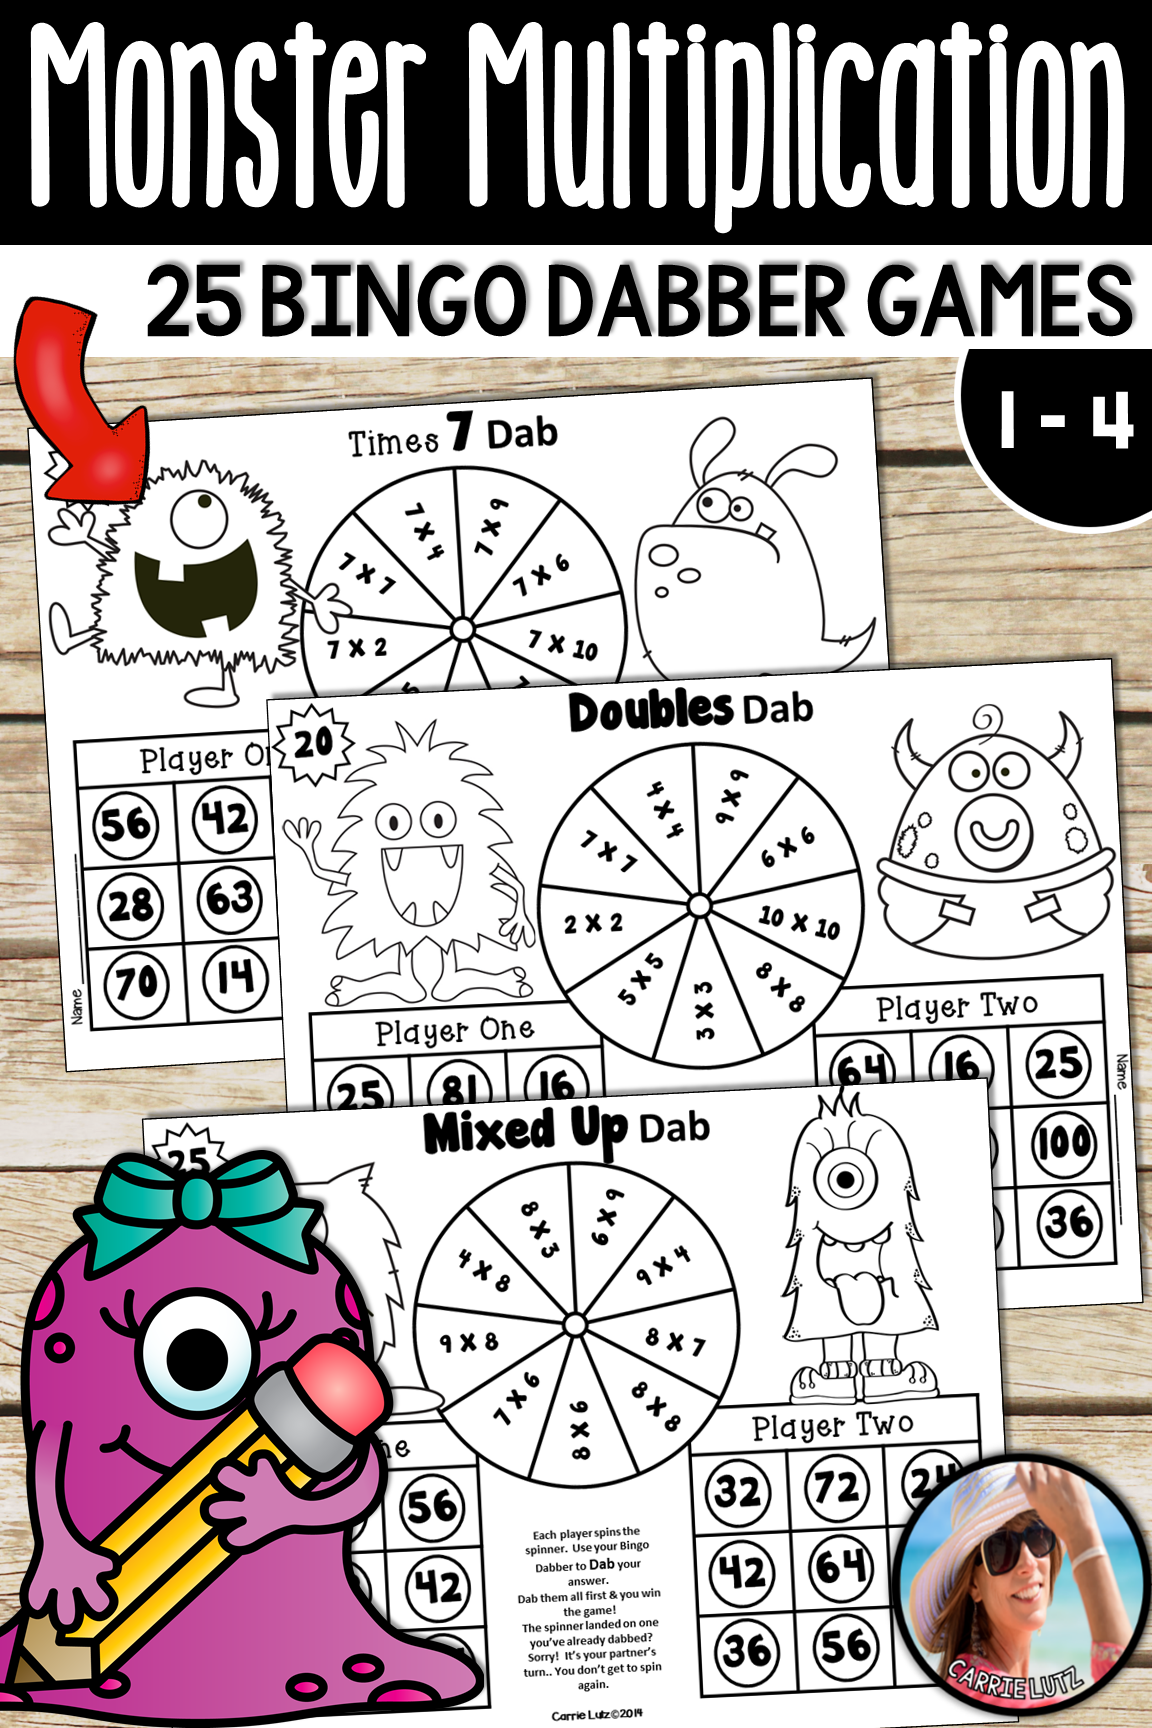 Monster Multiplication Games 25 Print And Play Bingo Dabber Games To 10 X 10